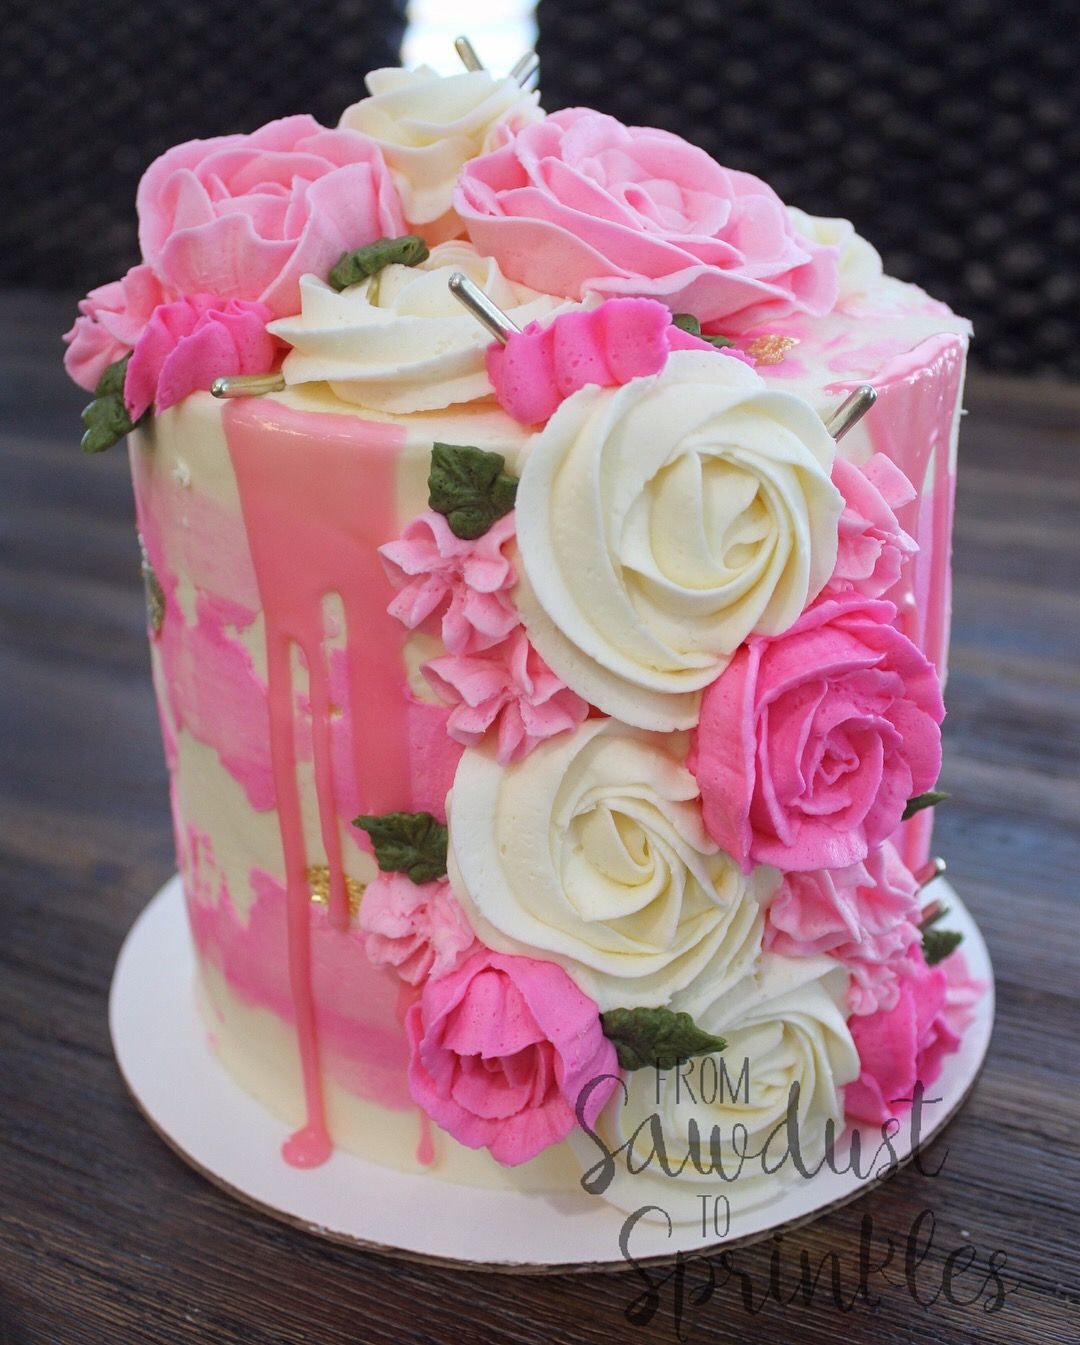 Vanilla Cake With Strawberry Cream Frosting Buttercream Flowers